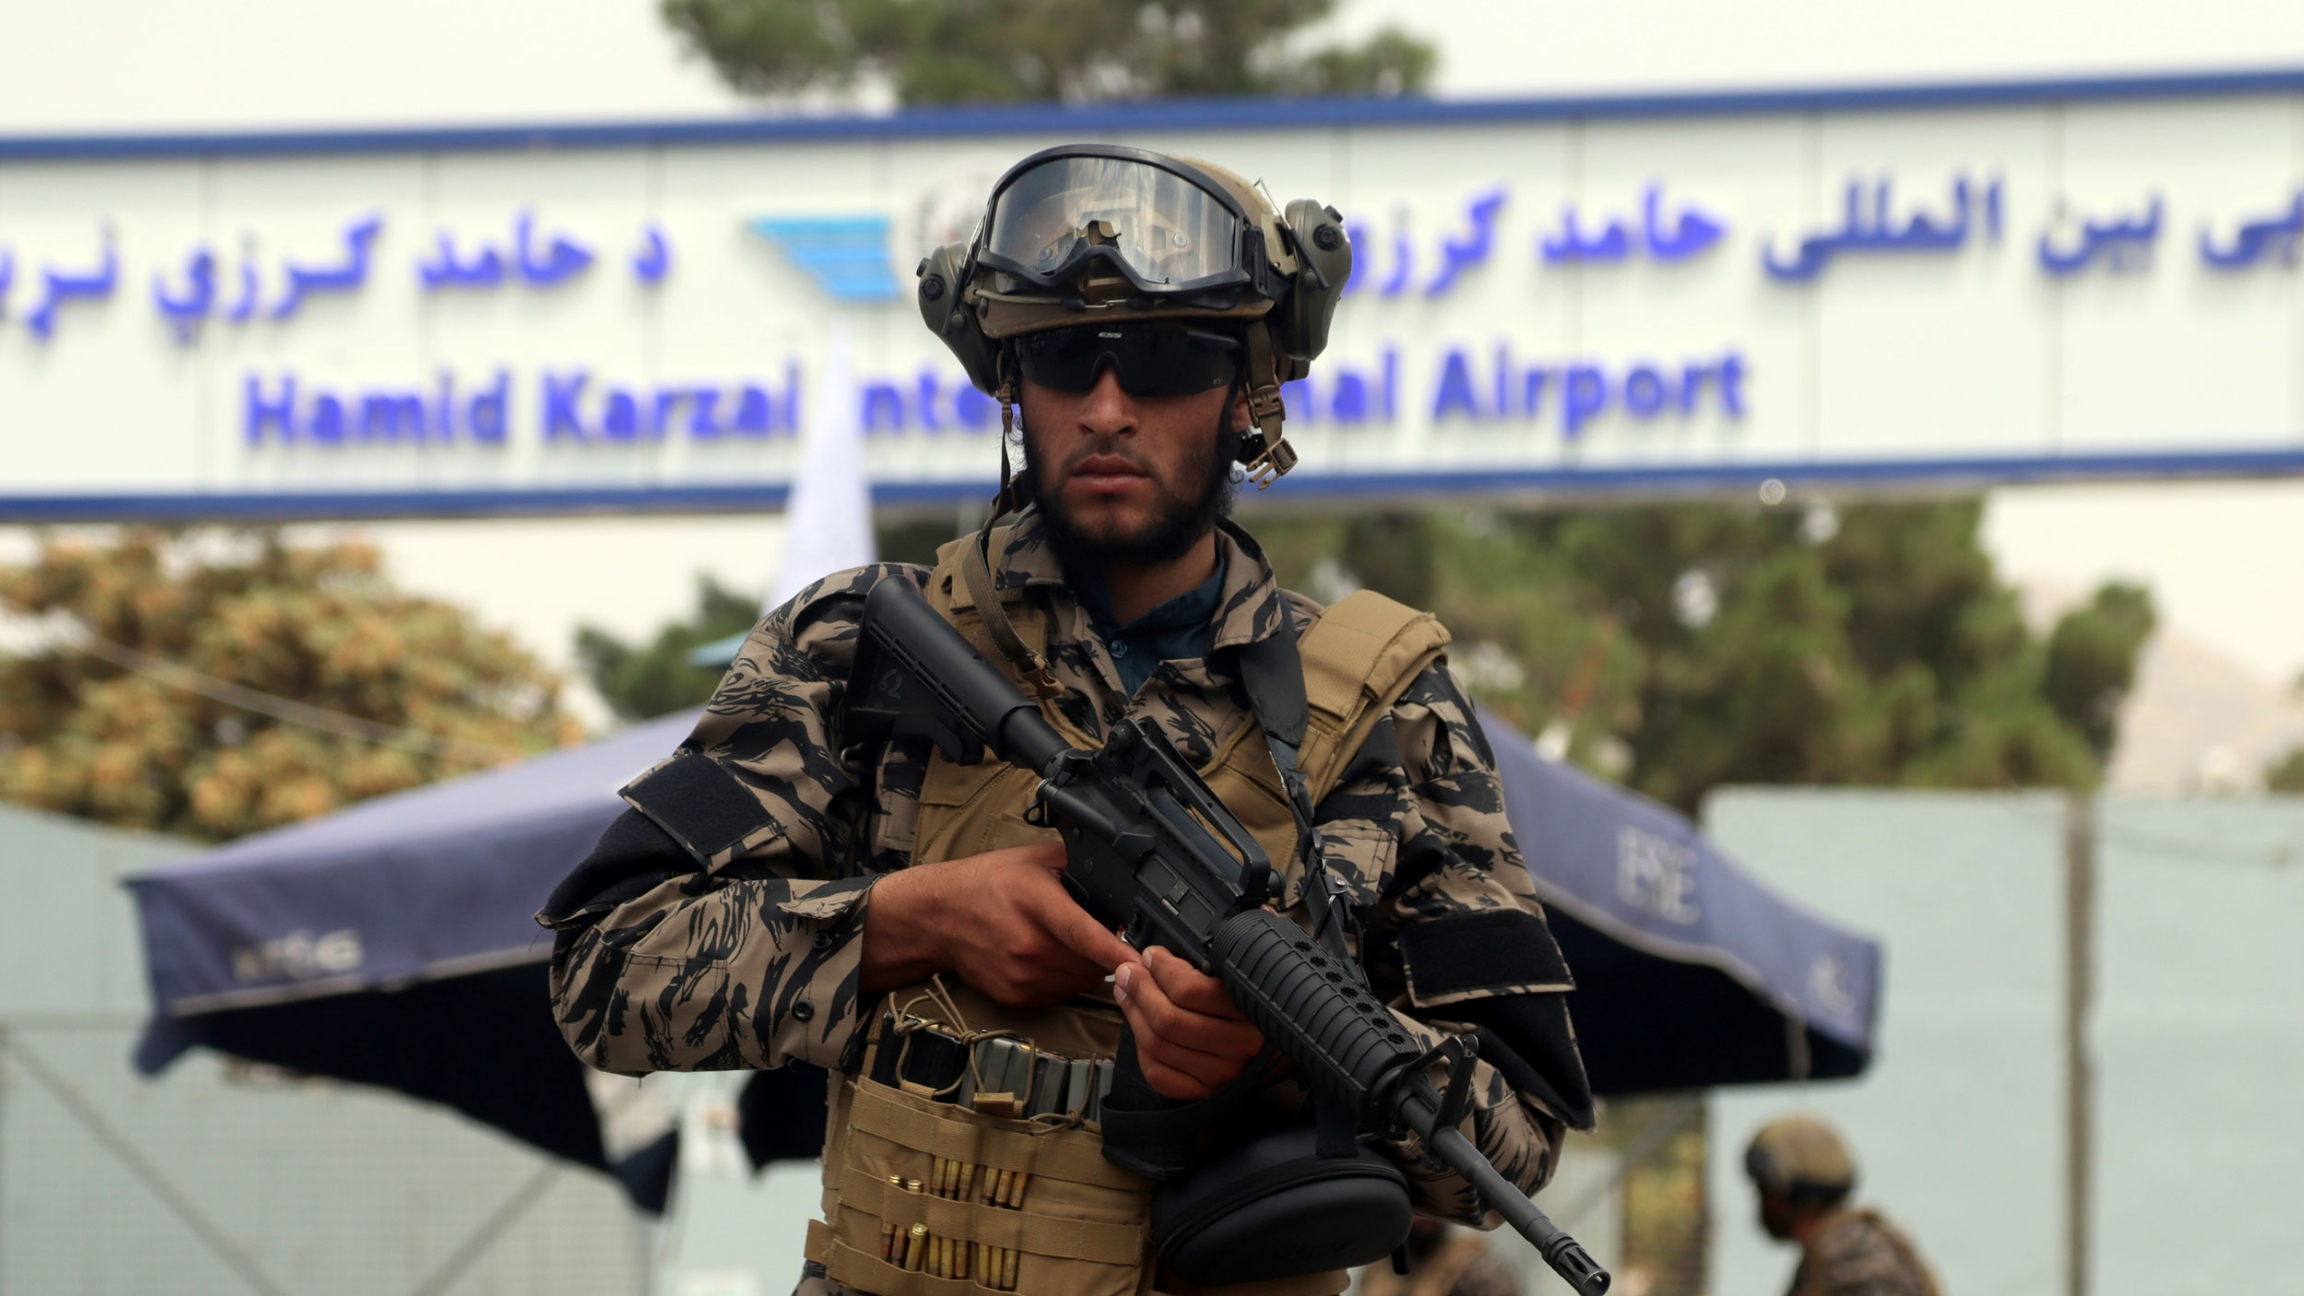 Taliban special force fighters stand guard outside the Hamid Karzai International Airport after the US military's withdrawal, in Kabul, Afghanistan, Tuesday, Aug. 31, 2021.